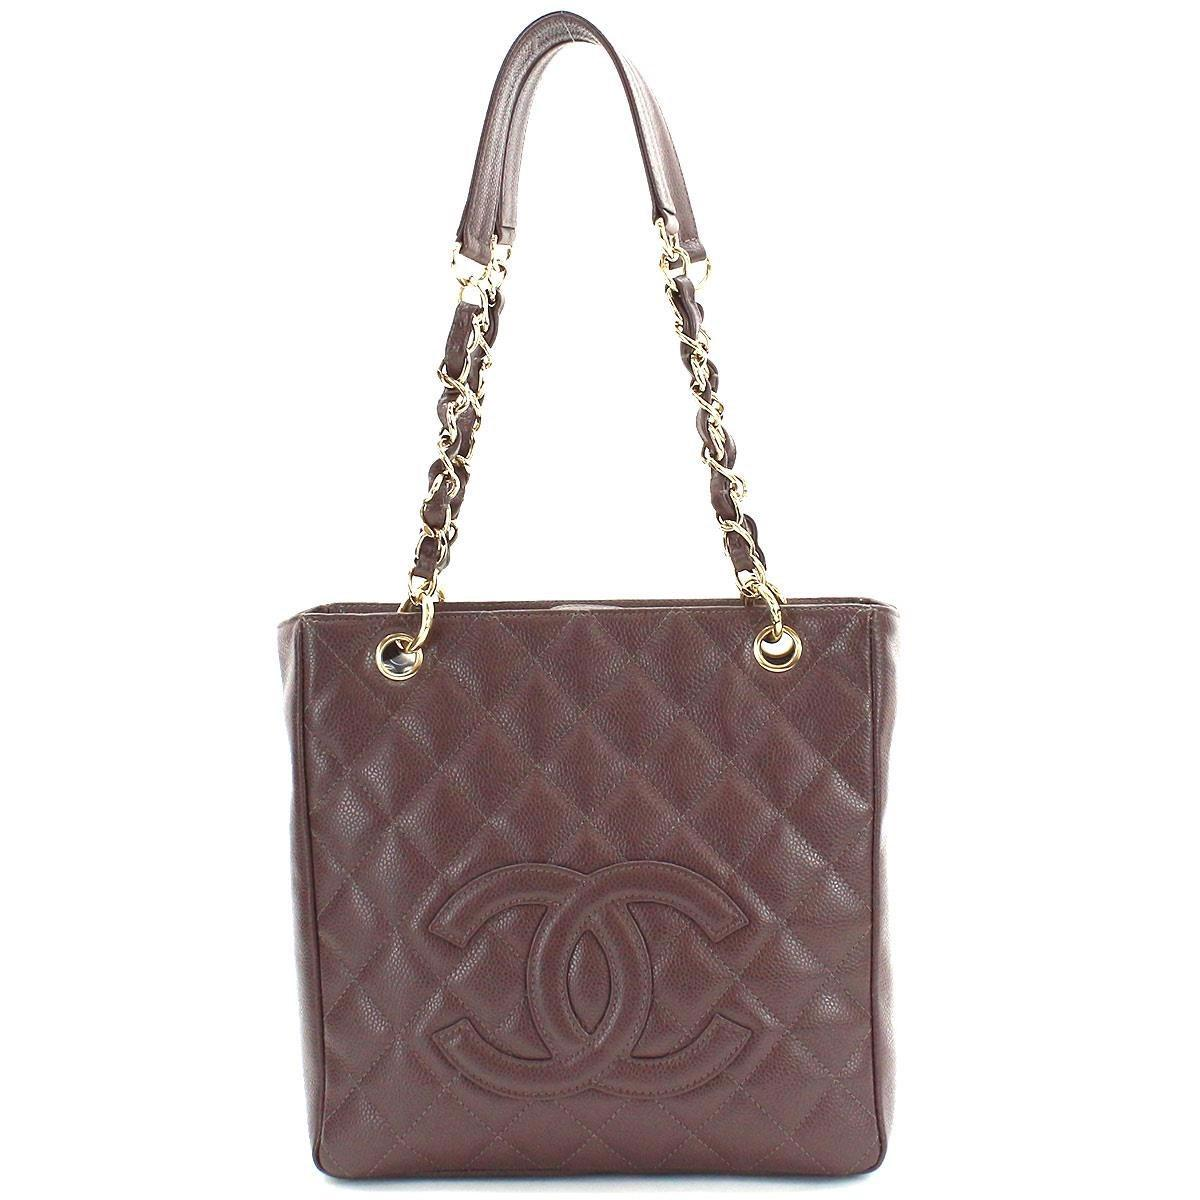 22dbdf19483db8 Chanel Caviar Skin Pst Chain Tote Bag Brown Purse Cc A50994 90046031 ...